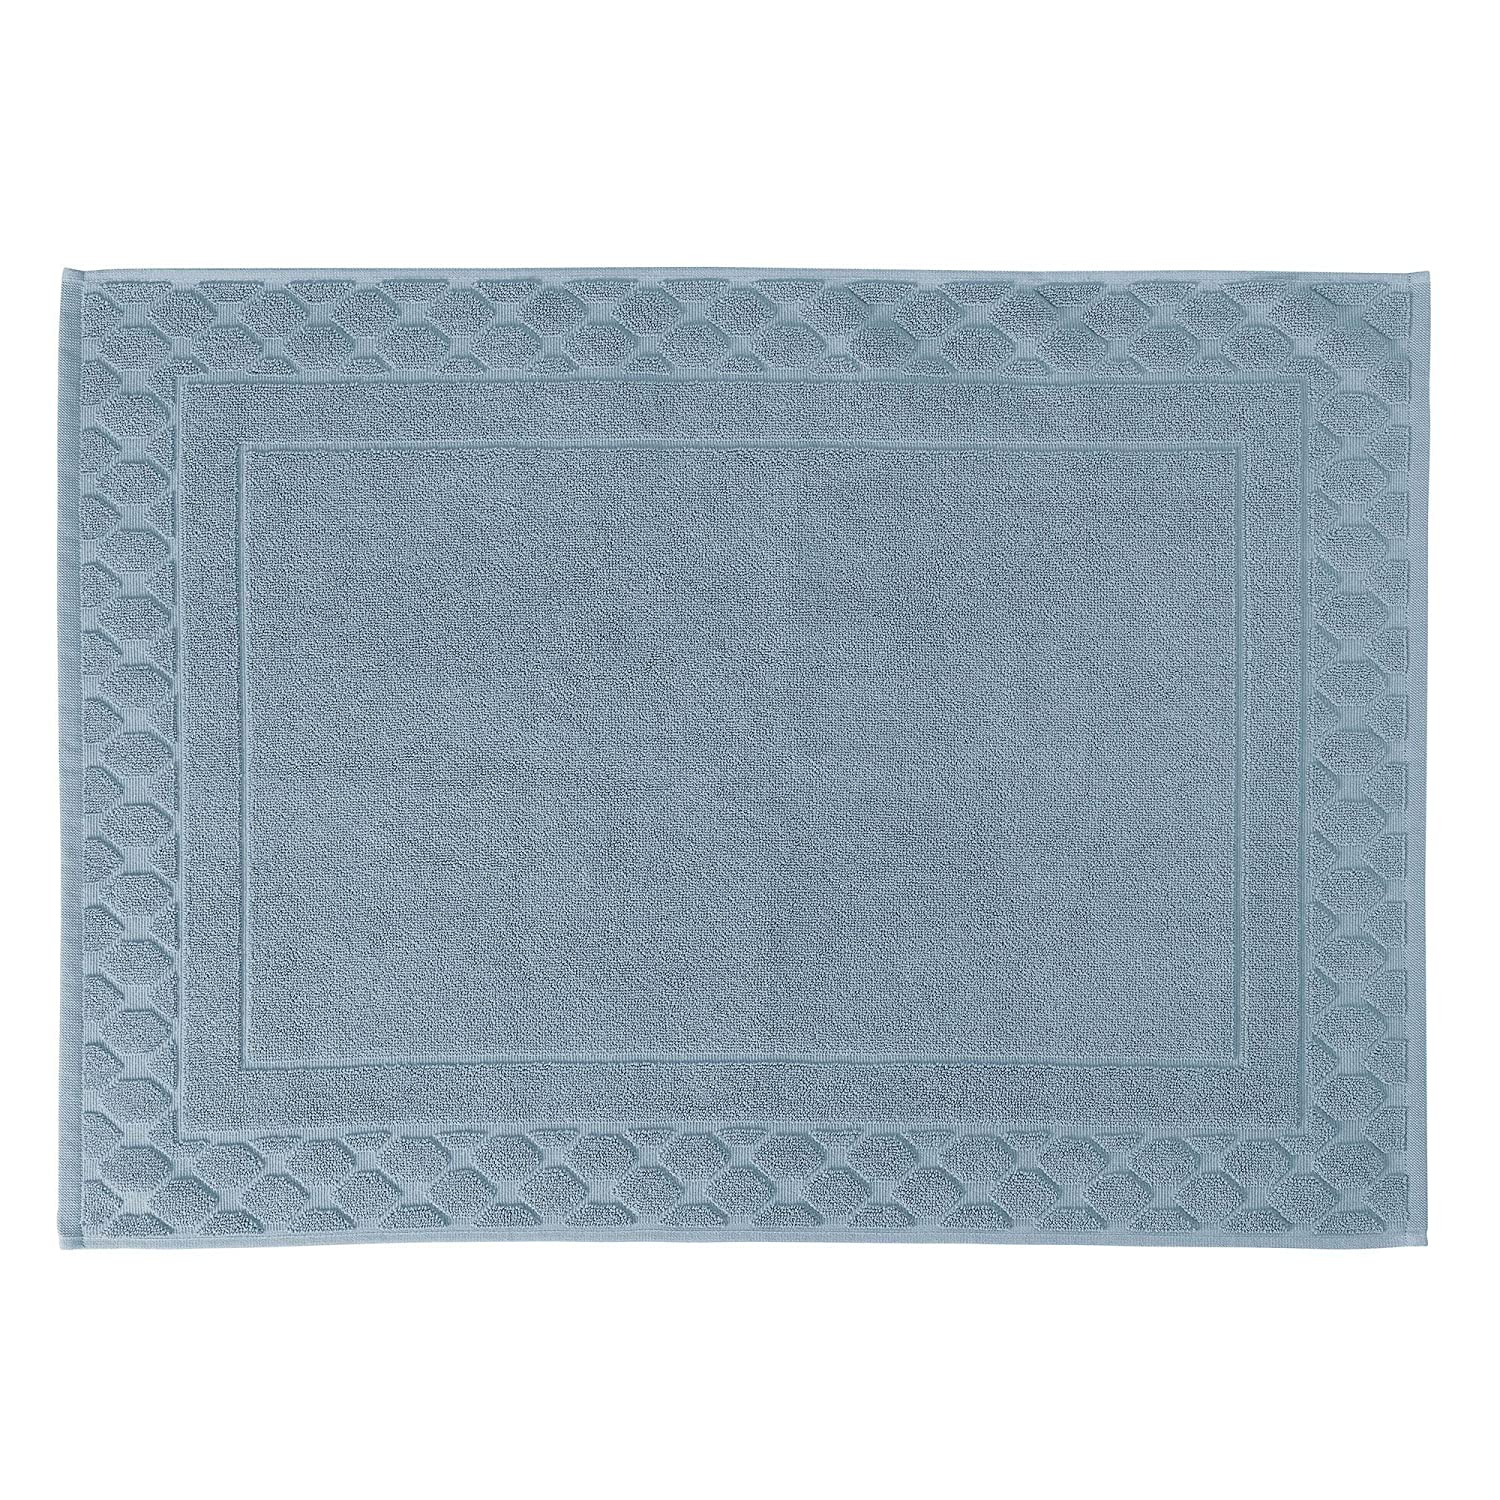 Descamps Foam Bath Mat, jade, 60 X 80 cm